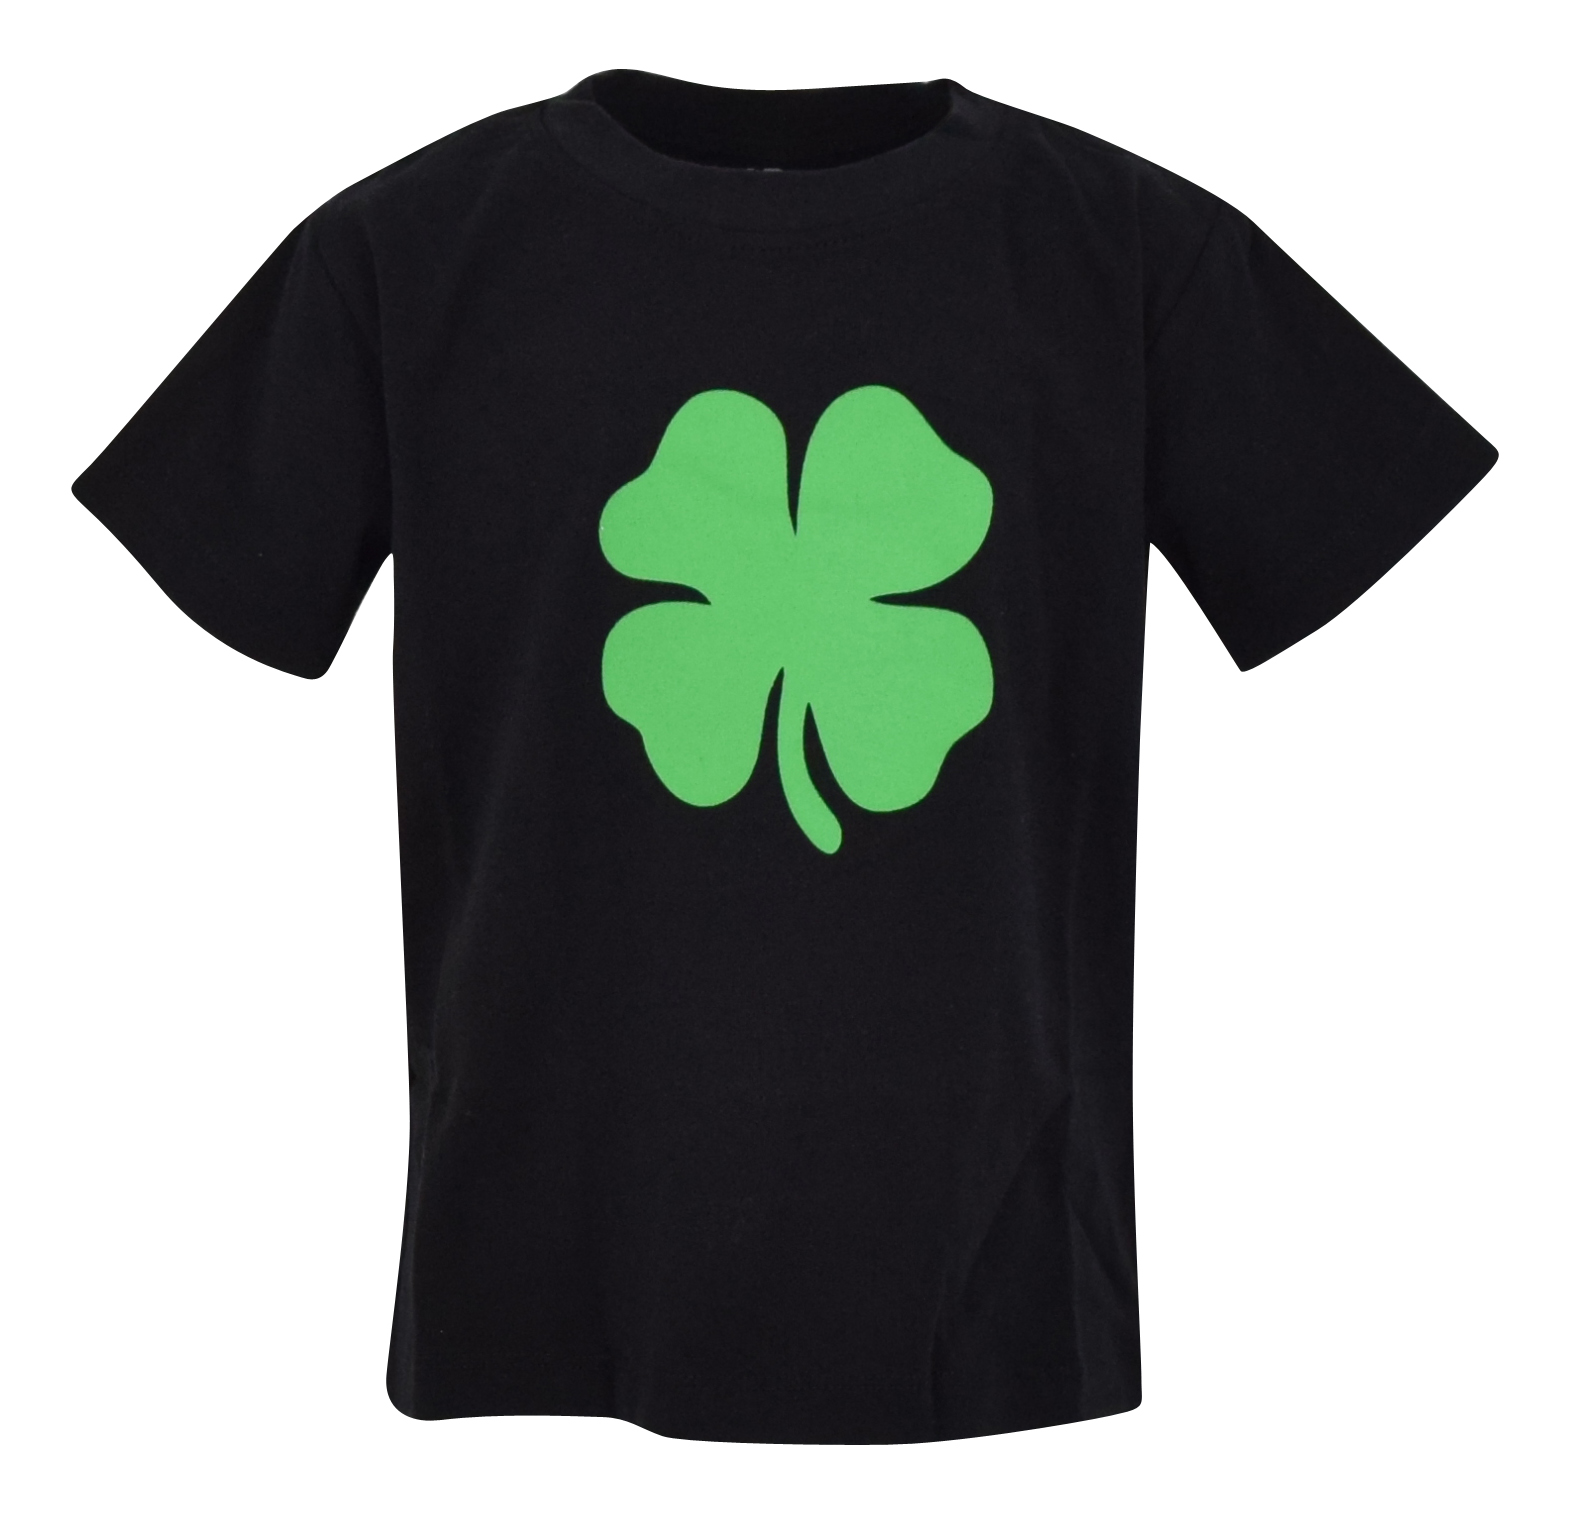 Boys-2-Piece-ST-Patricks-Day-Clover-Outfit-2t-3t-4t-5-6-7-8-Toddler-Kids-Clothes thumbnail 41